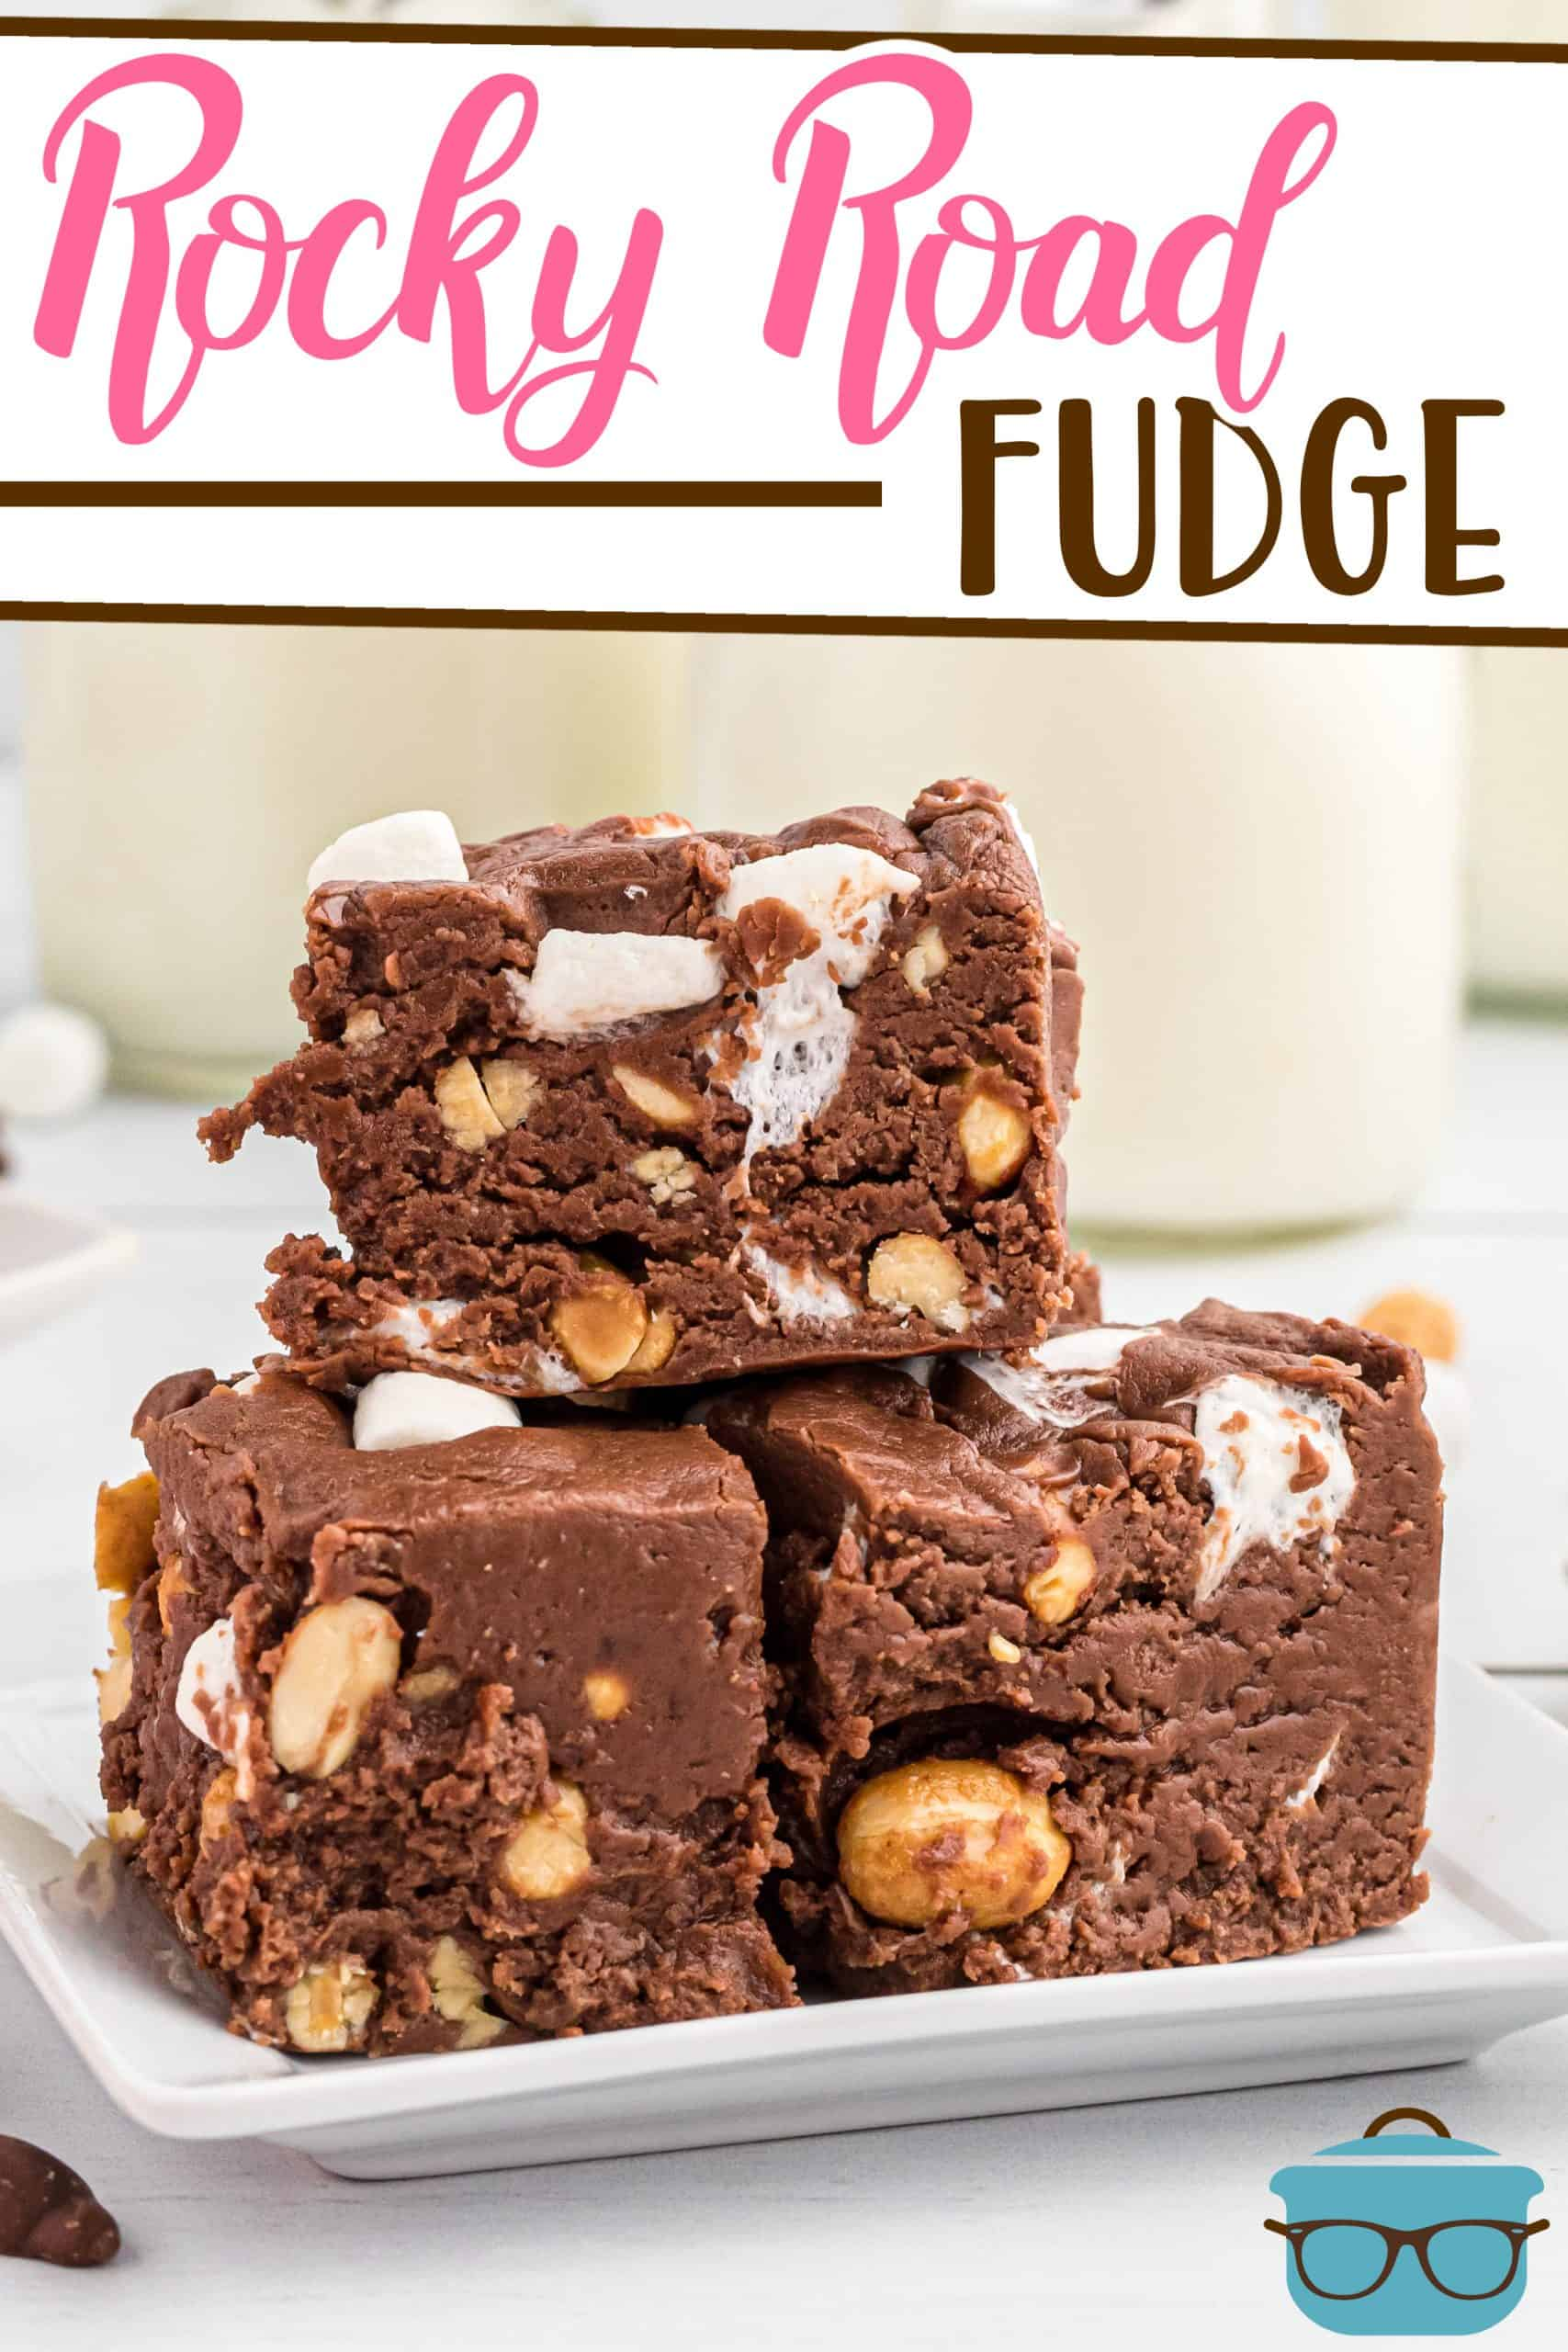 This Homemade Rocky Road Fudge is an easy recipe for a thick, rich chocolate fudge stuffed with mini marshmallows and peanuts!